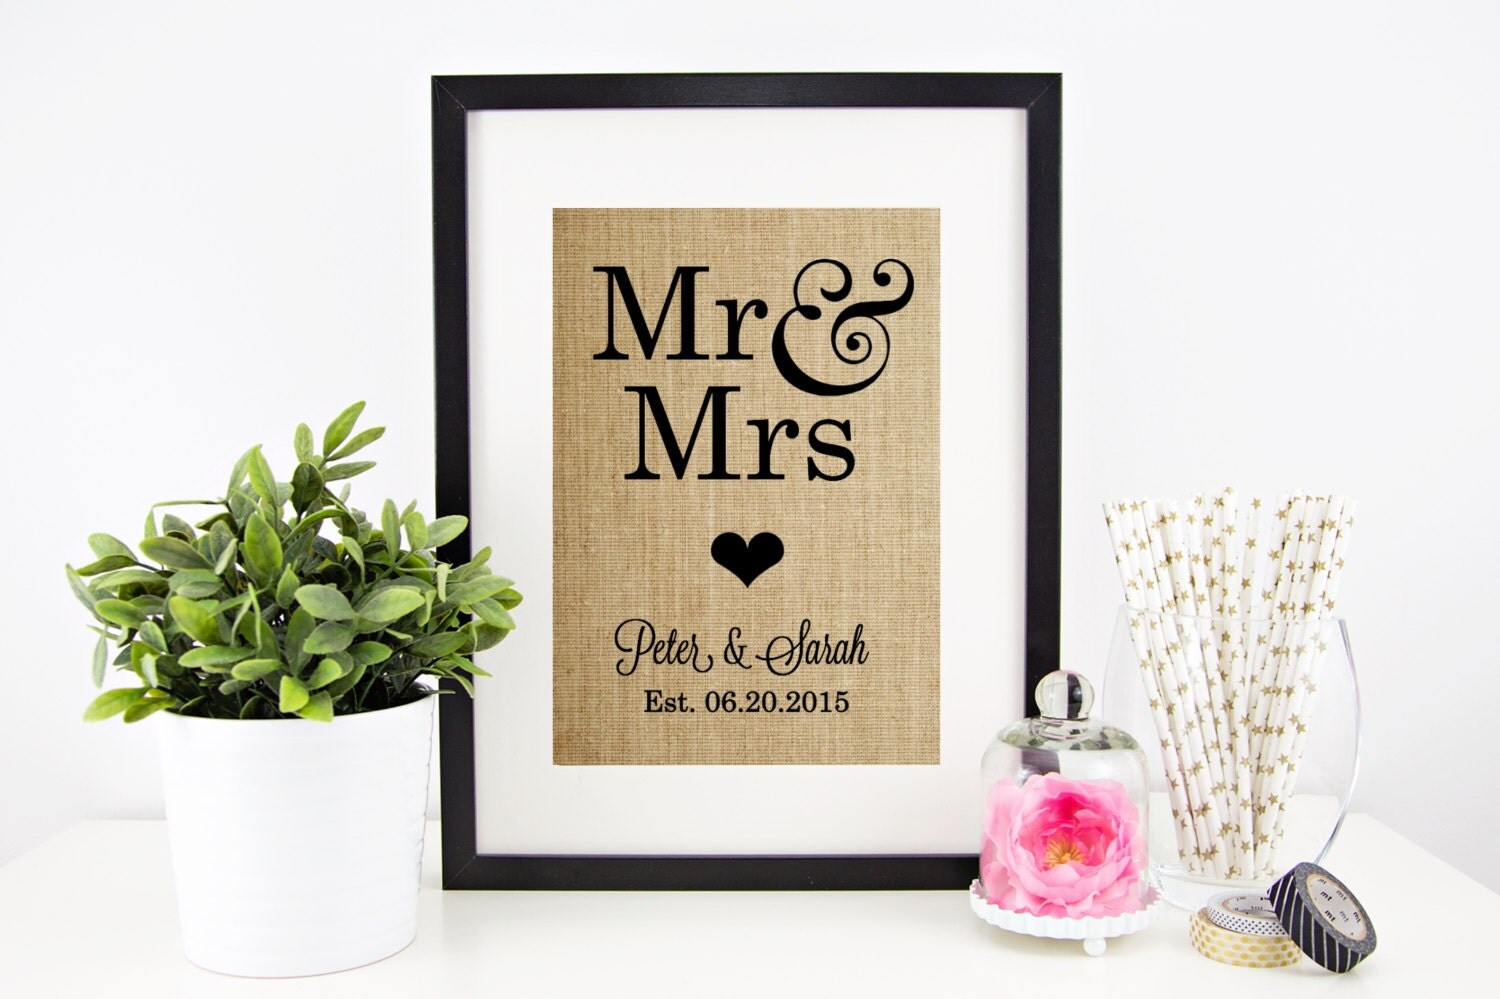 Mr And Mrs Gifts Wedding: Personalized Wedding Gift MR MRS Personalized Gift For